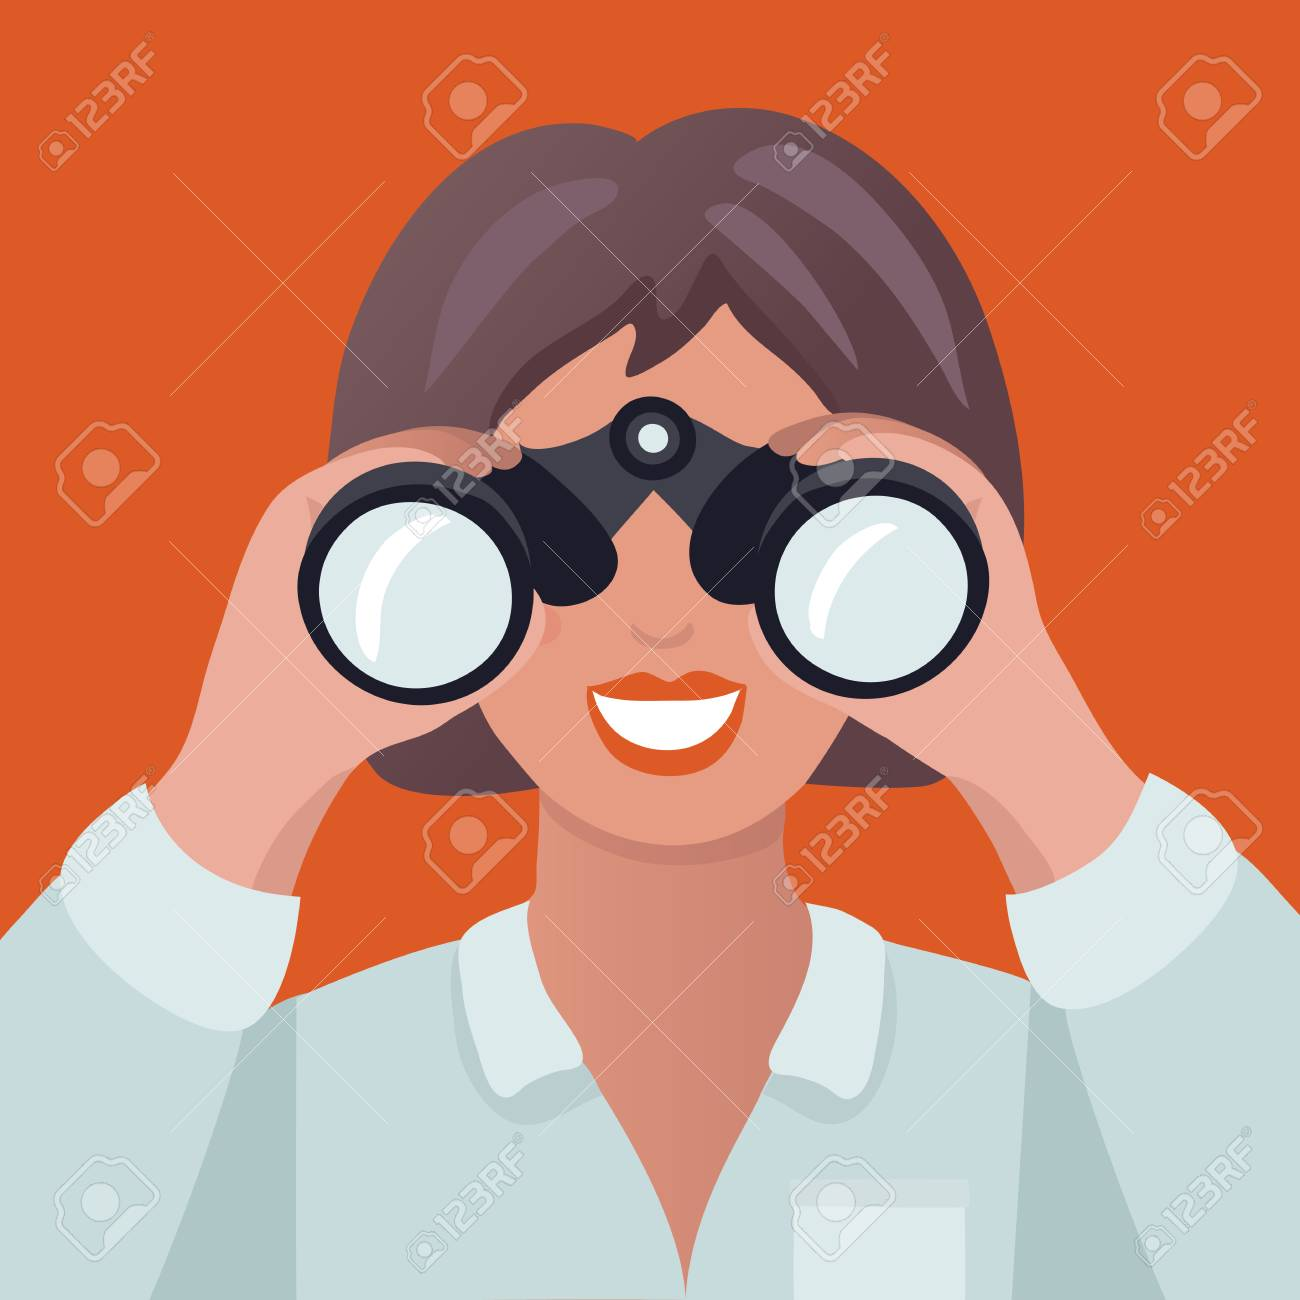 Vector cartoon illustration of woman holding binoculars. A woman in search. - 97311587